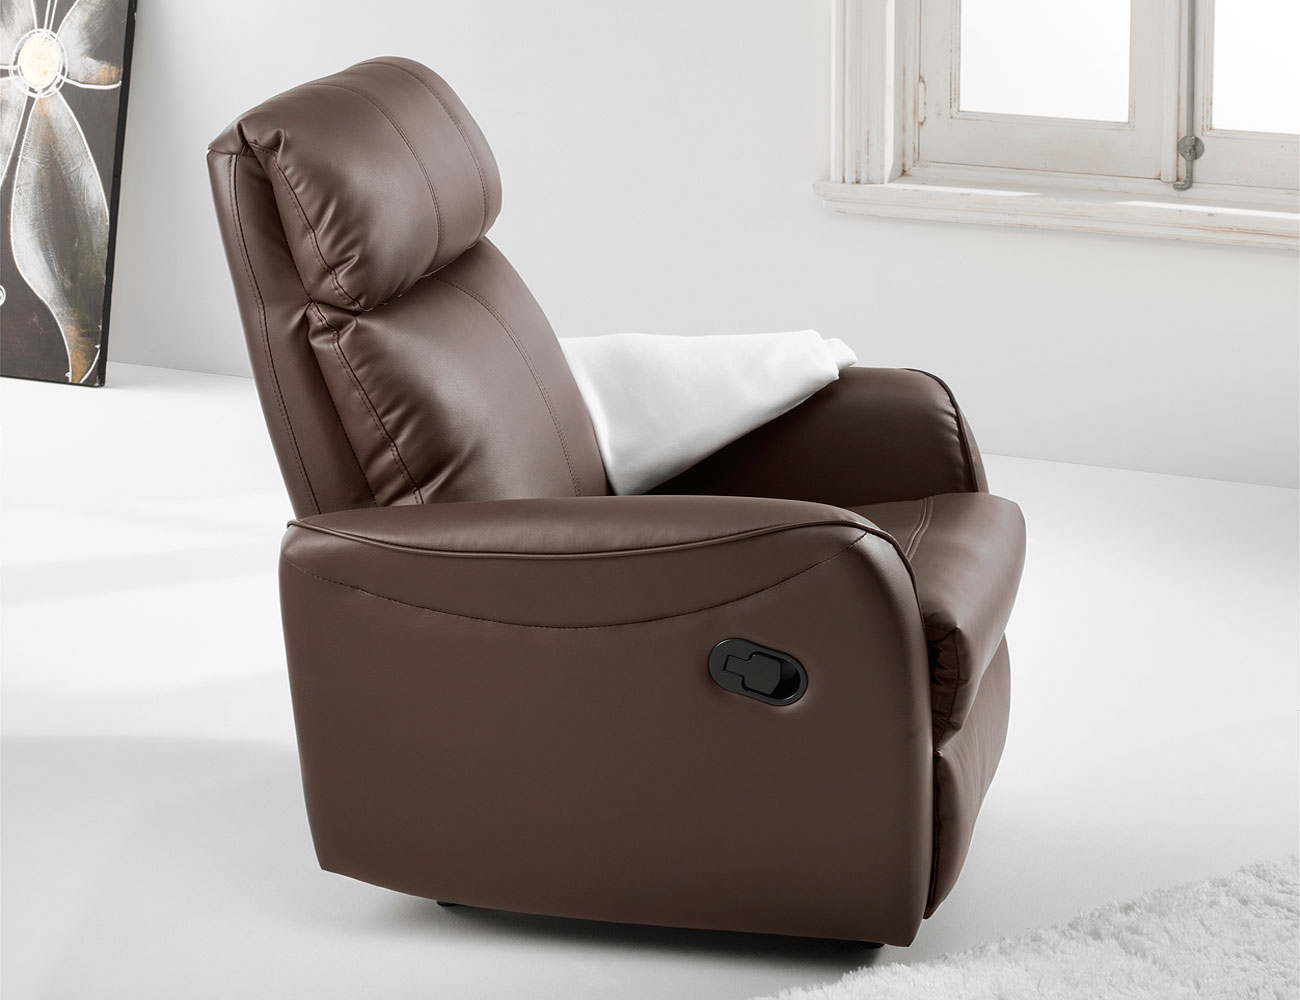 Sillon relax palanca simil piel chocolate2